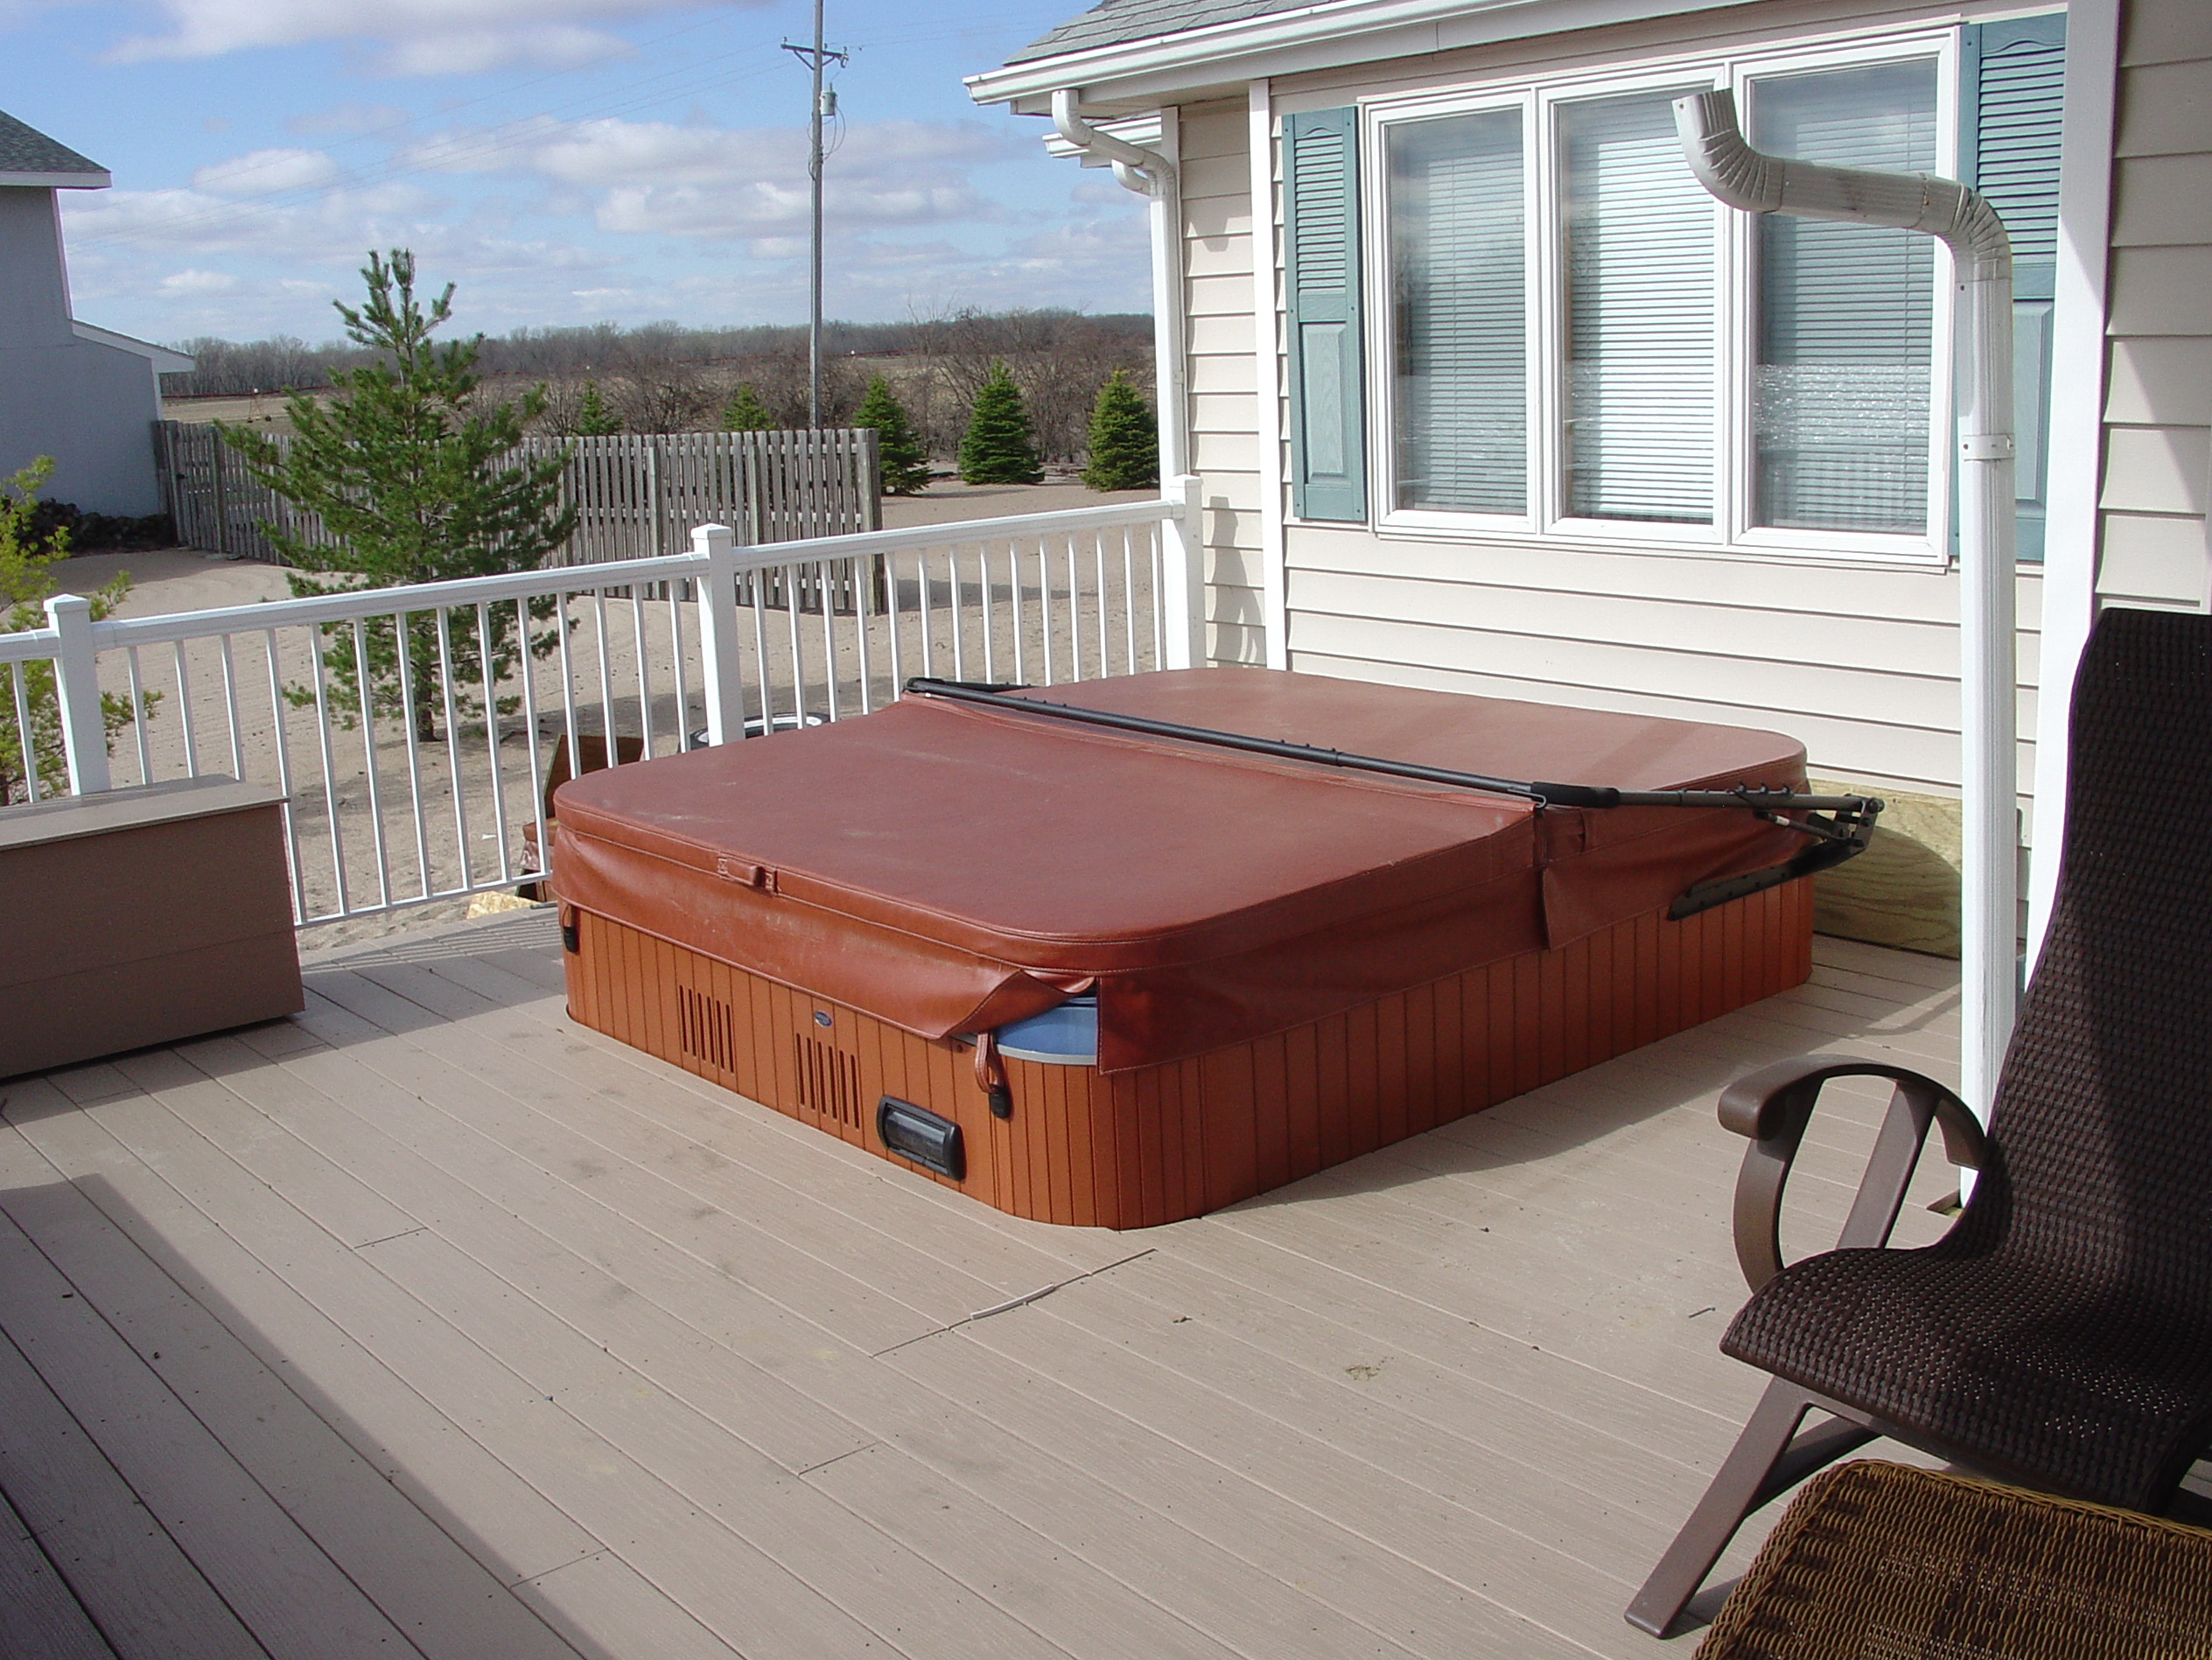 Hot tub on deck ideas home design ideas for Hot tub deck designs plans